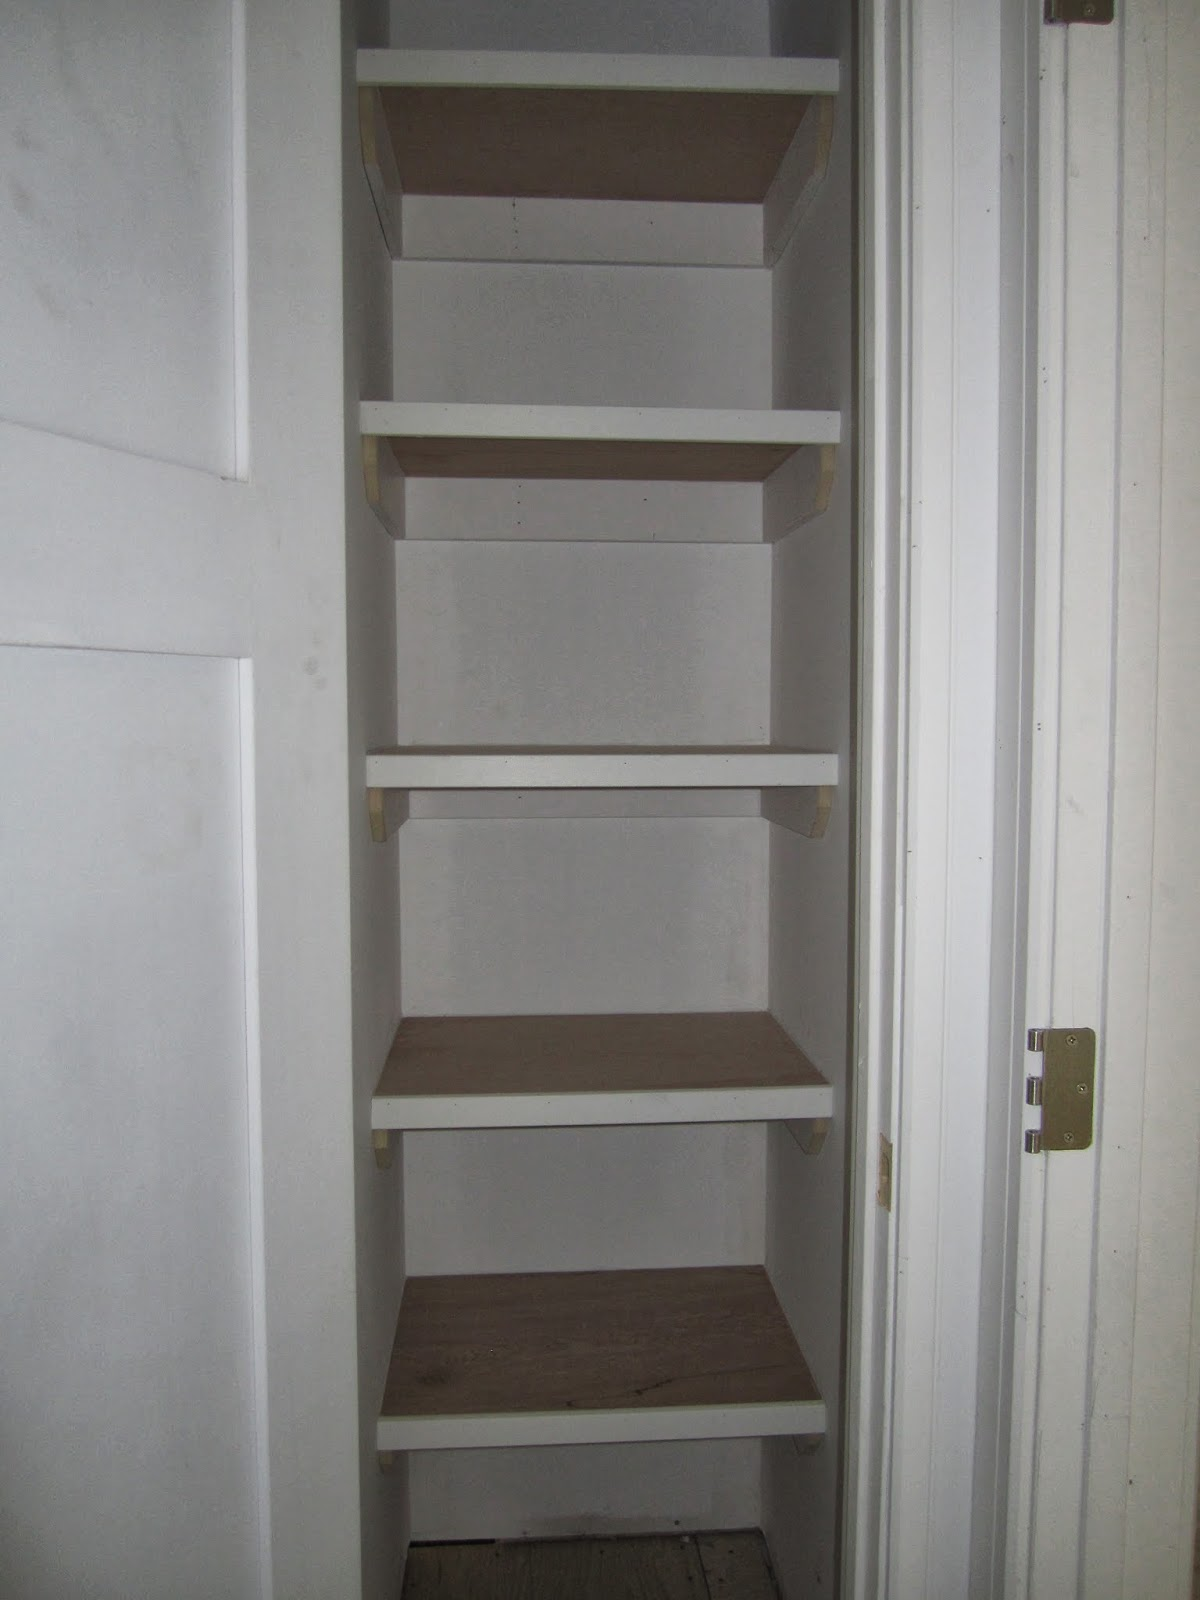 Building An Infill In Westmount Shelves Trim And Paint Oh My